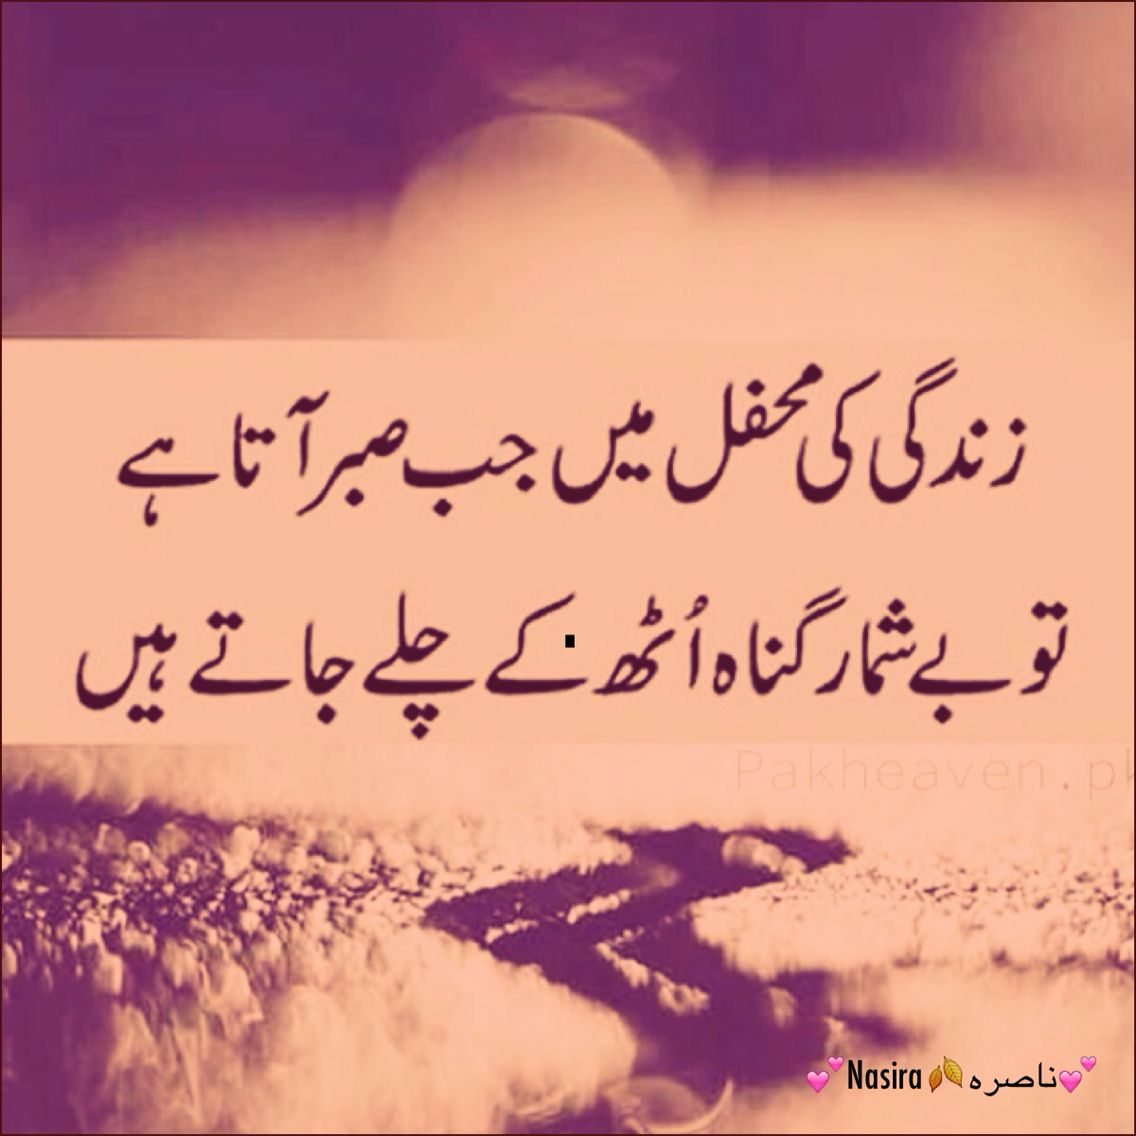 Pin by Nasira Ahmad on An URDU POETRY & quotes | Pinterest